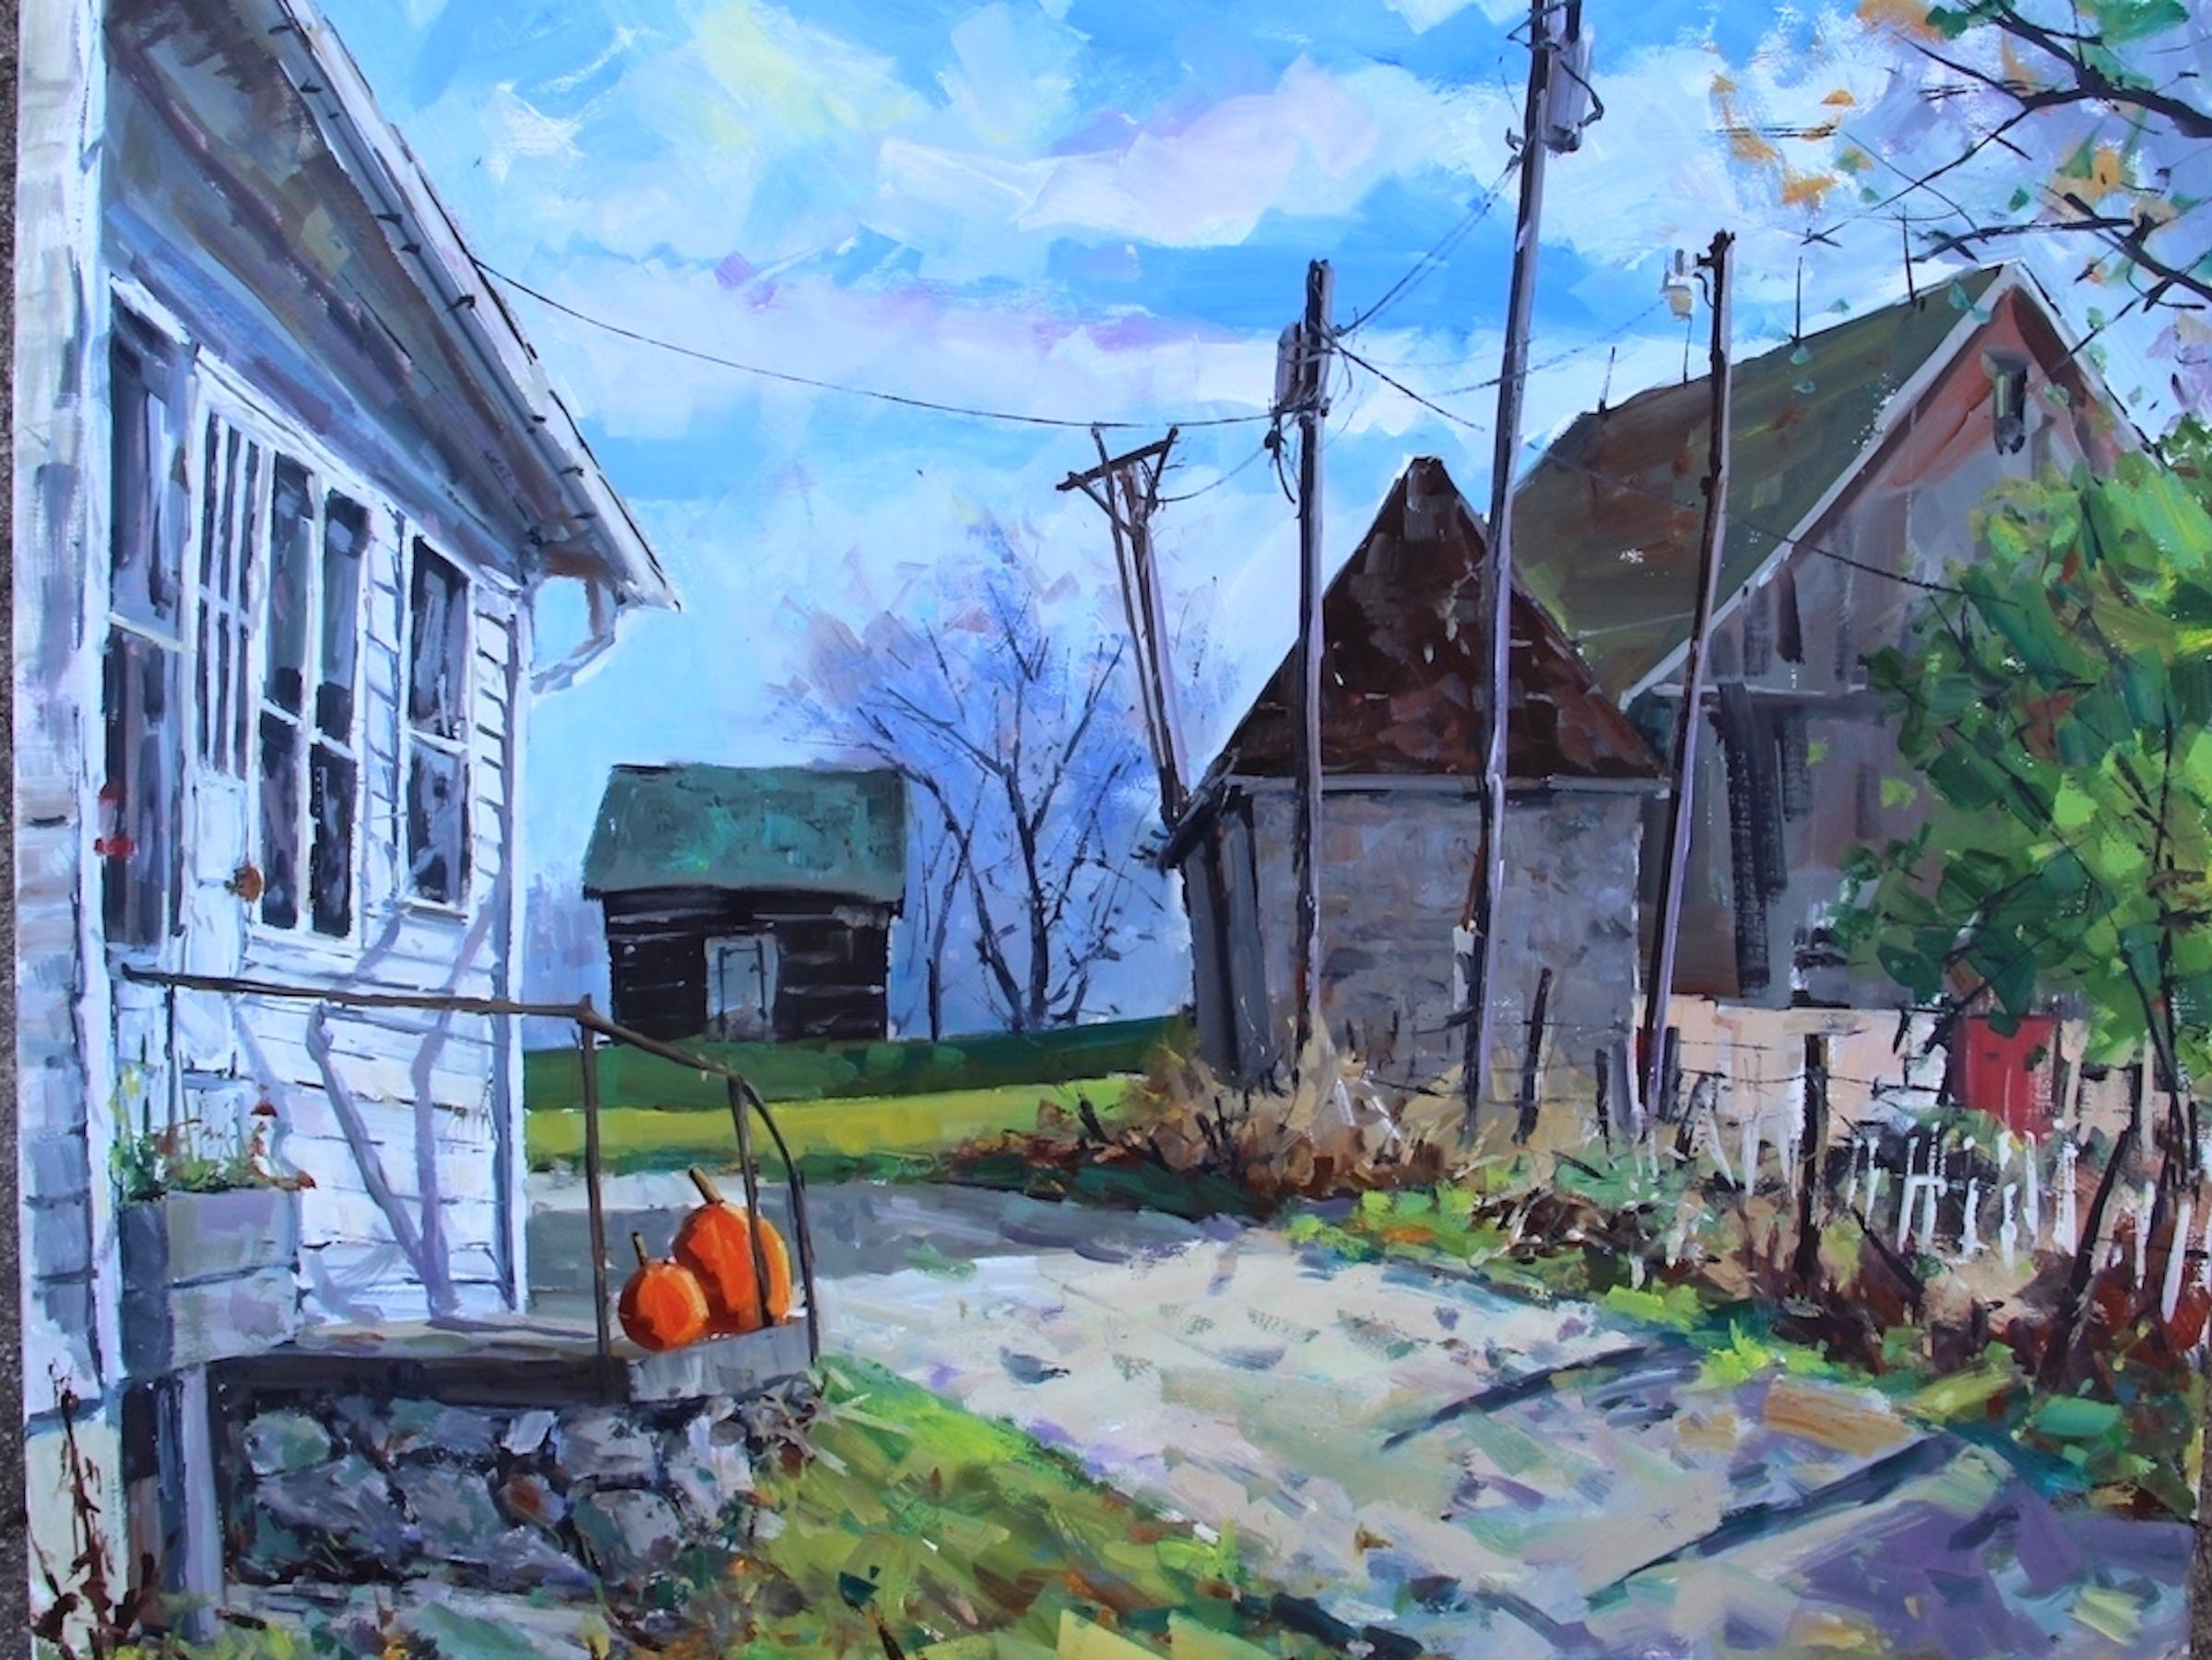 'Jerome's View' by Manitowoc artist Bob Beck.